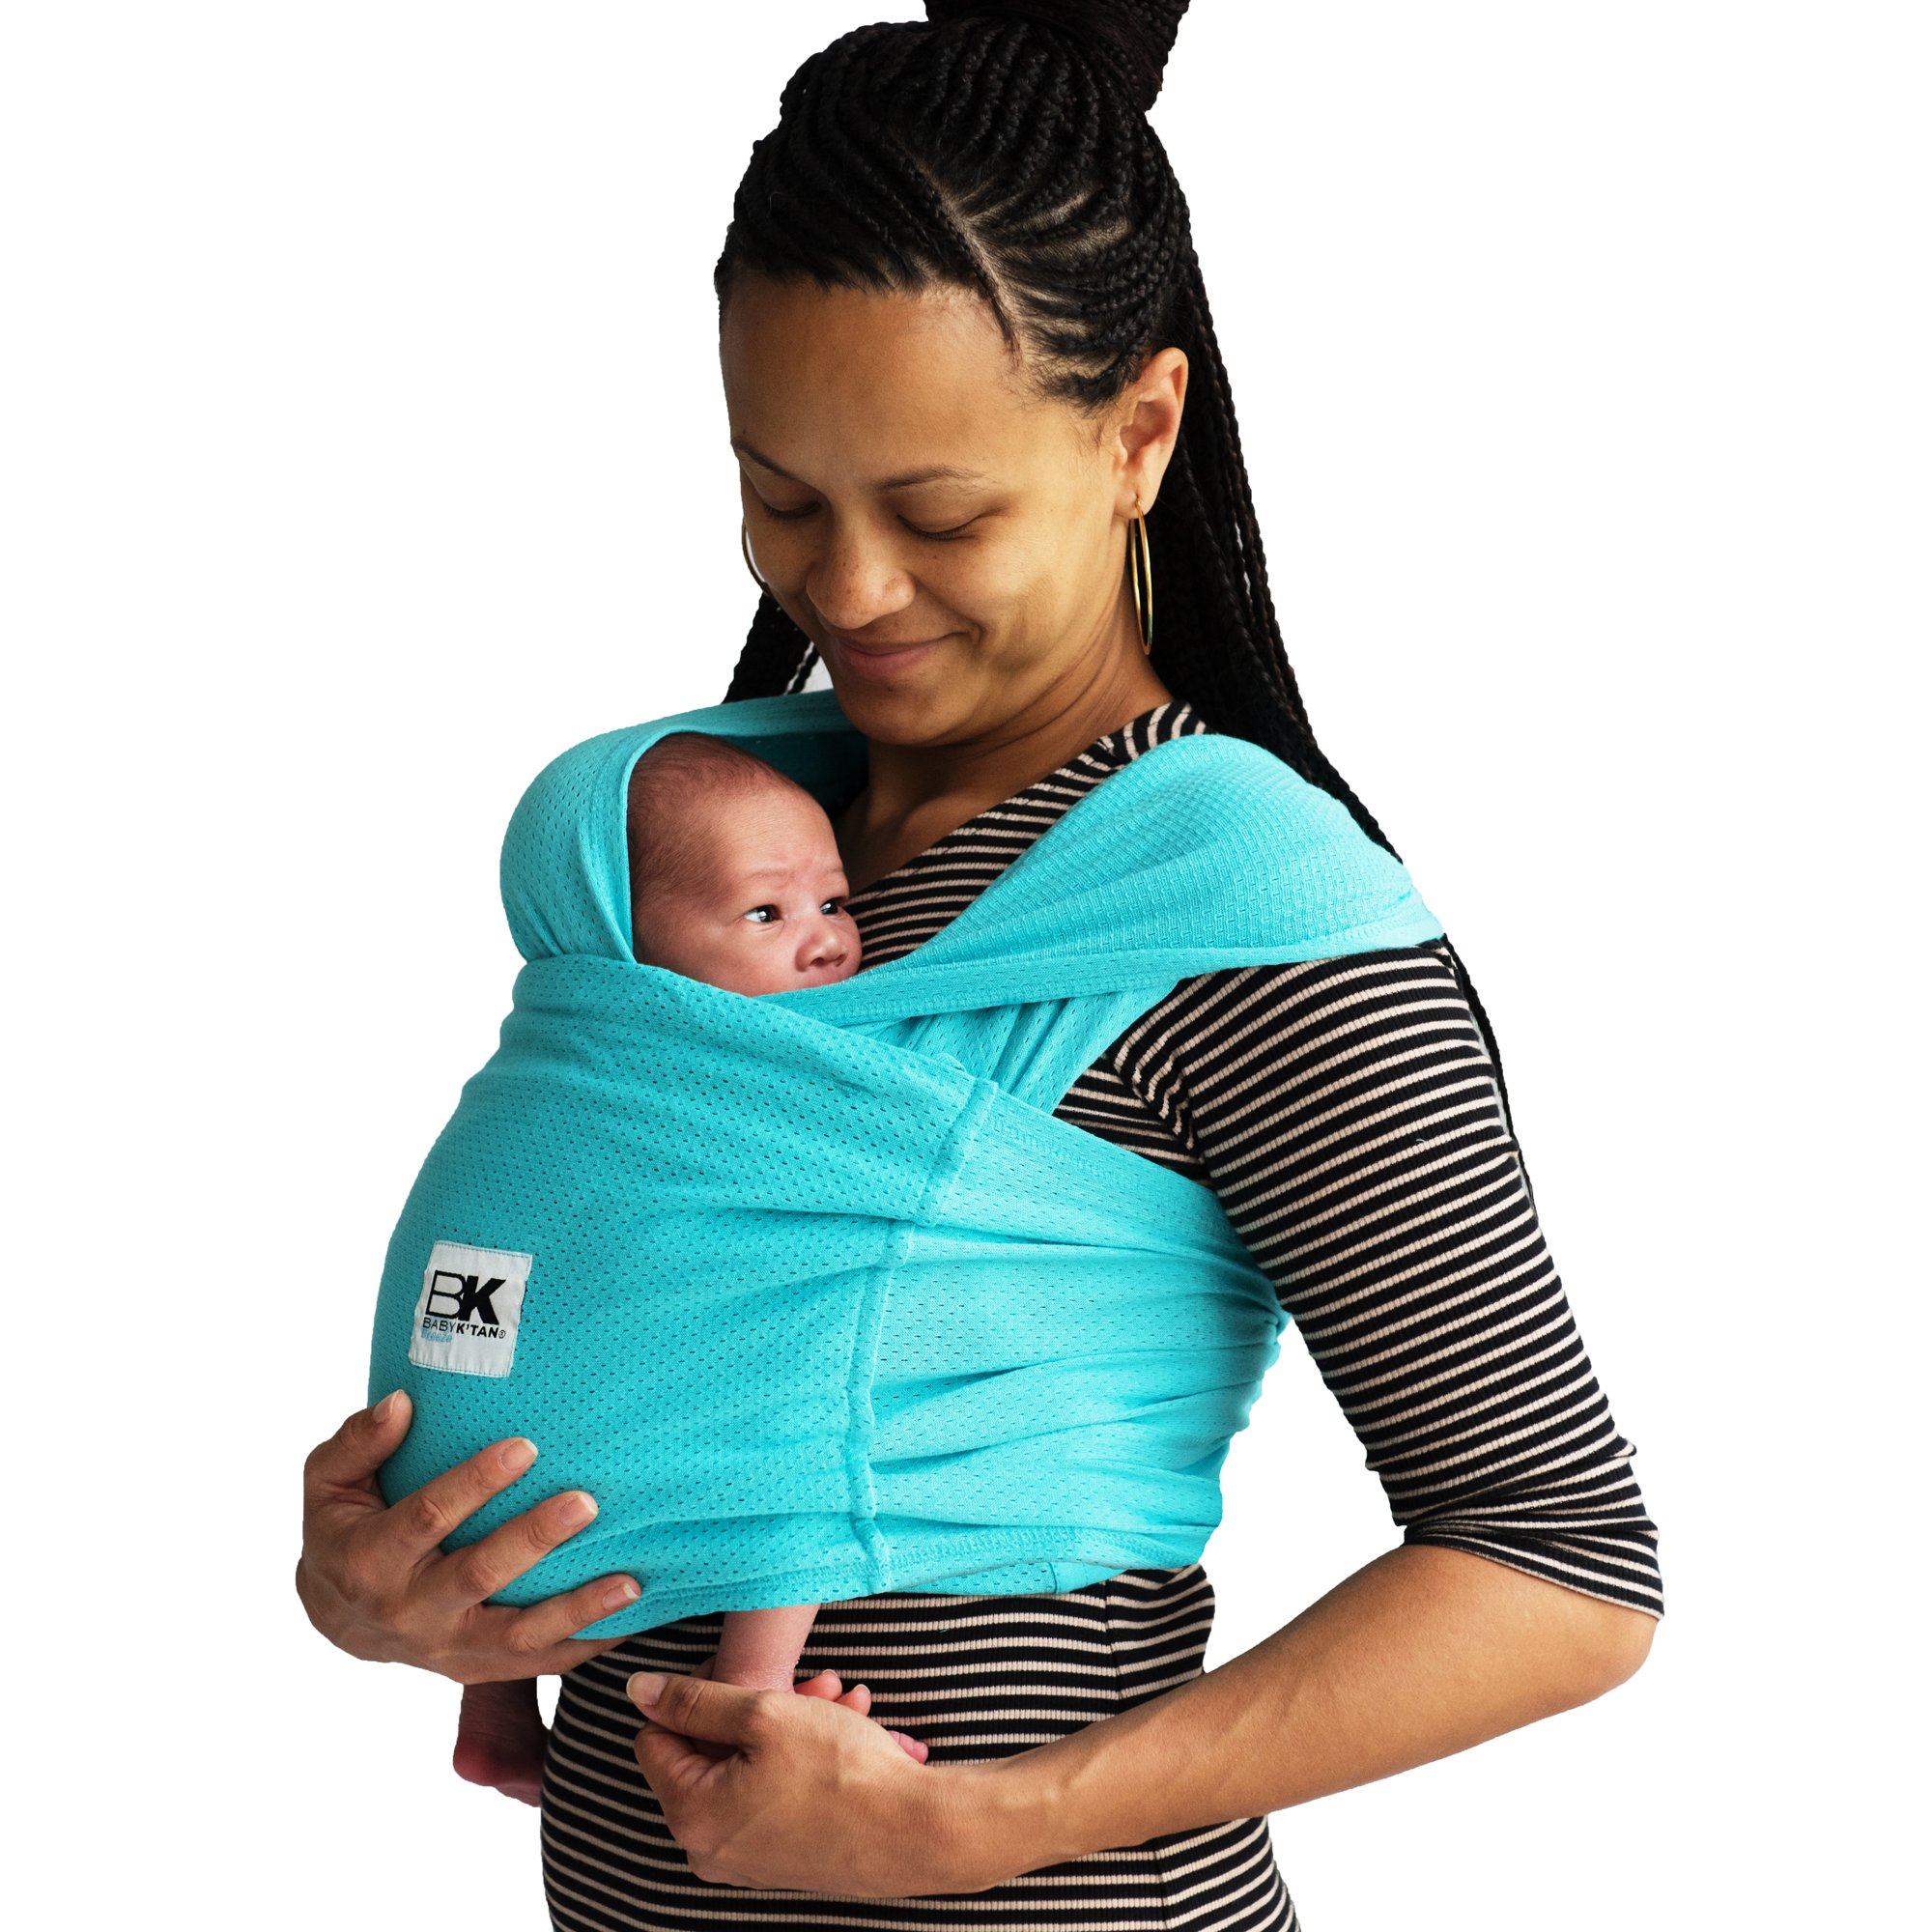 Baby K'tan Breeze Baby Wrap Carrier, Infant and Child Sling - Simple Wrap Holder for Babywearing - No Rings or Buckles - Carry Newborn up to 35 lbs, Teal, X-Small (W Dress 2-4 / M Jacket up to 36)